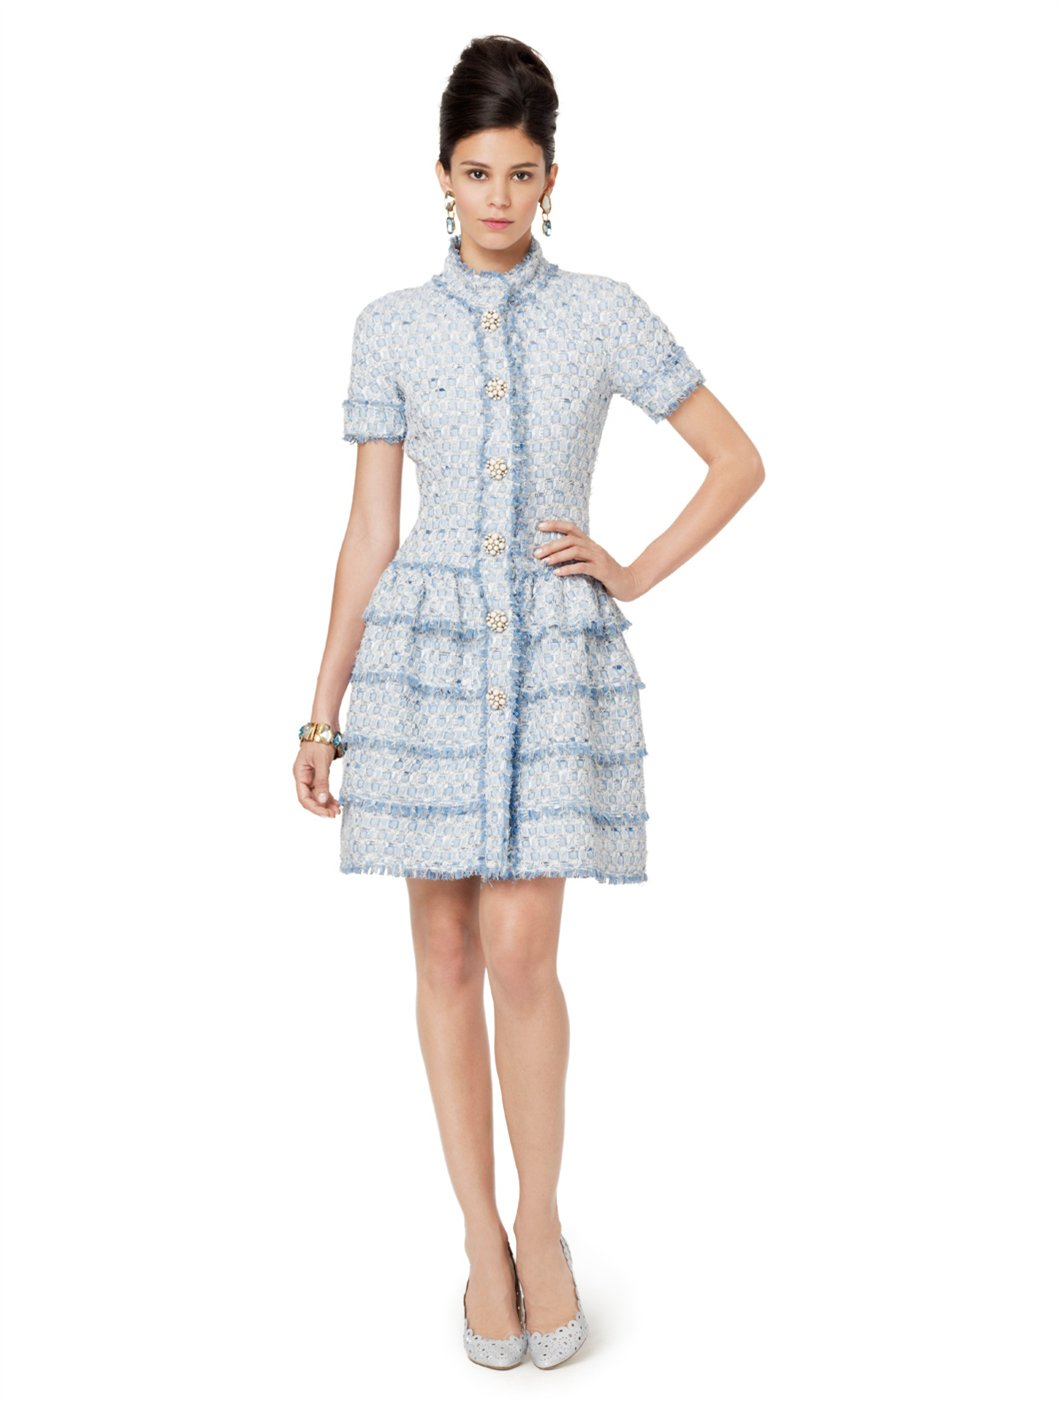 Lyst - Oscar De La Renta Short Sleeve Tweed Dress with ...